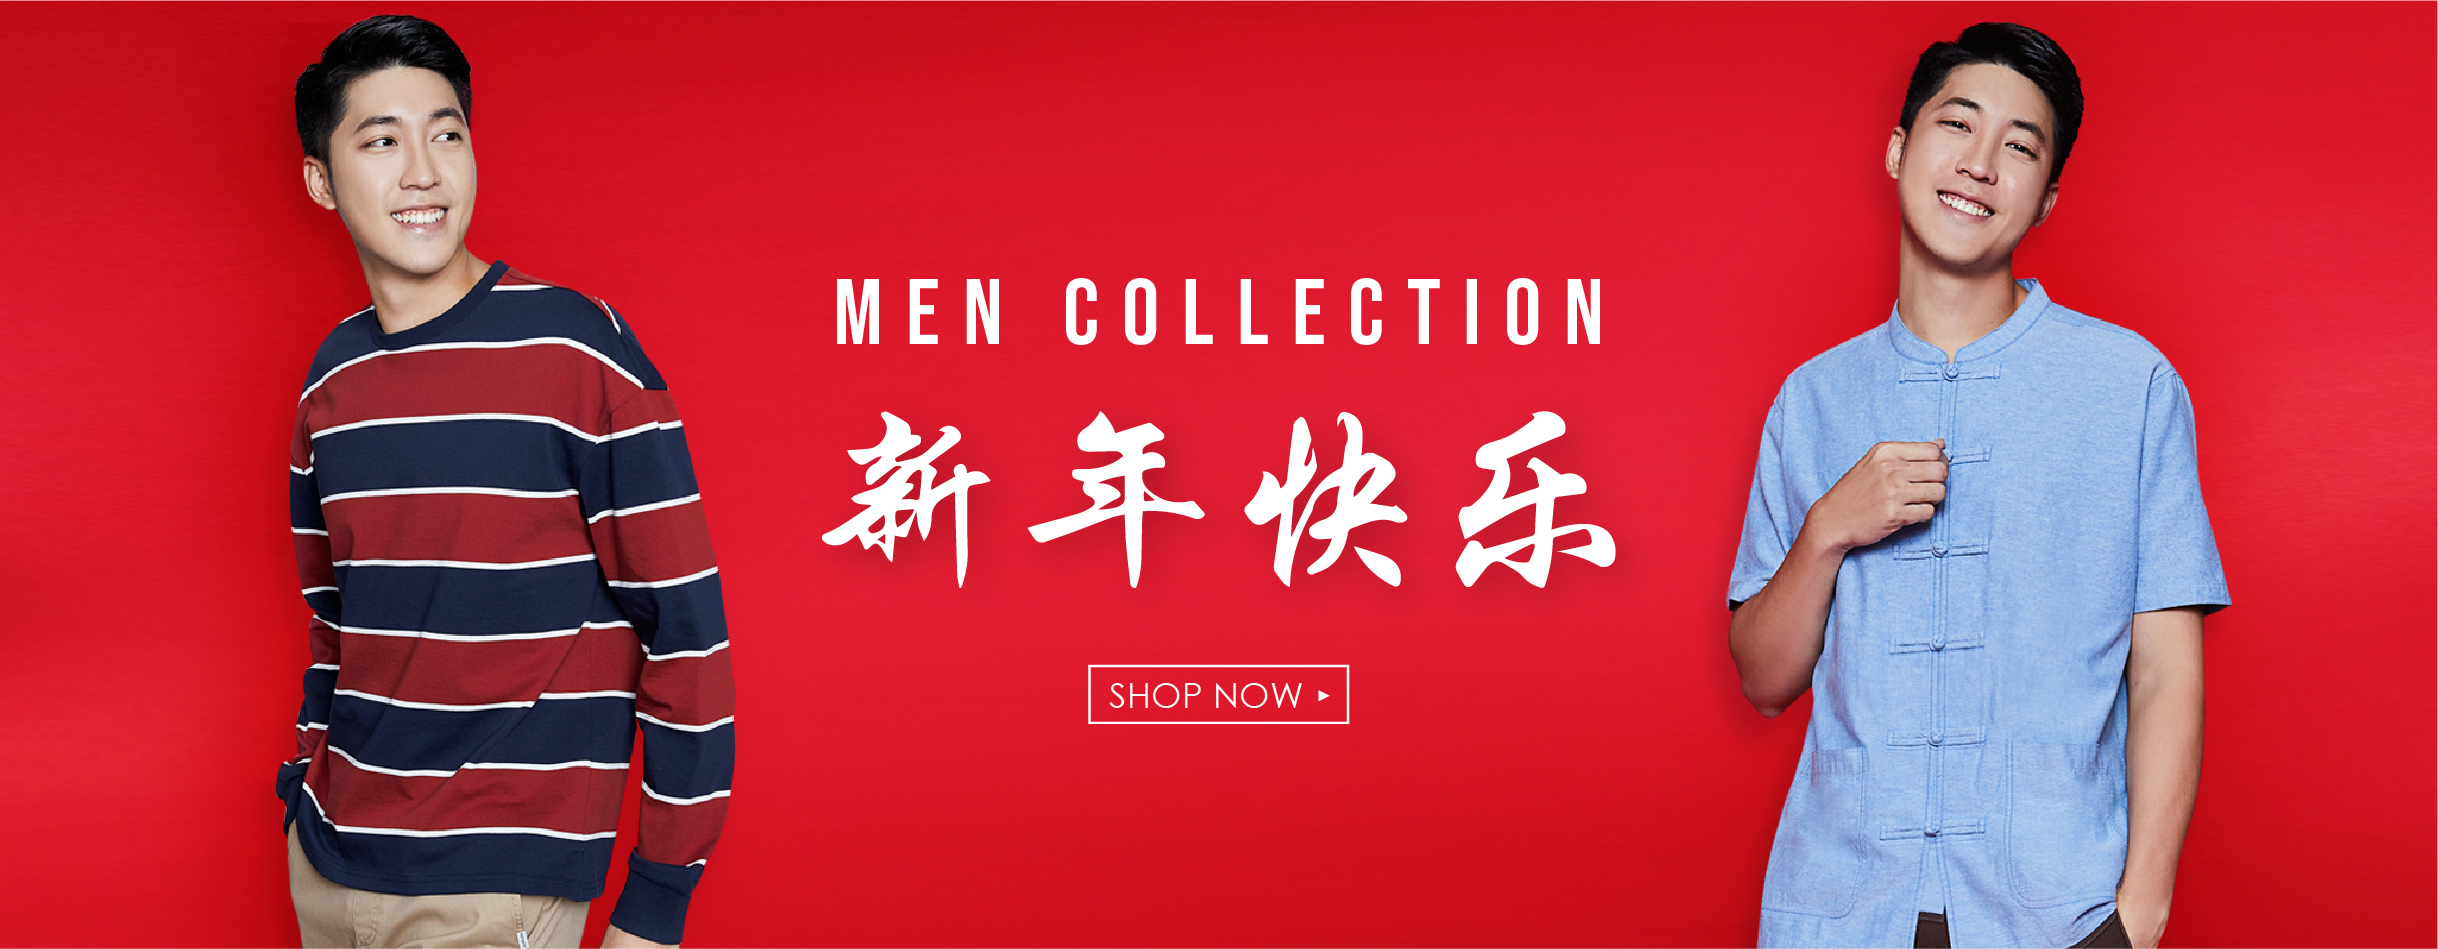 Men CNY Collections